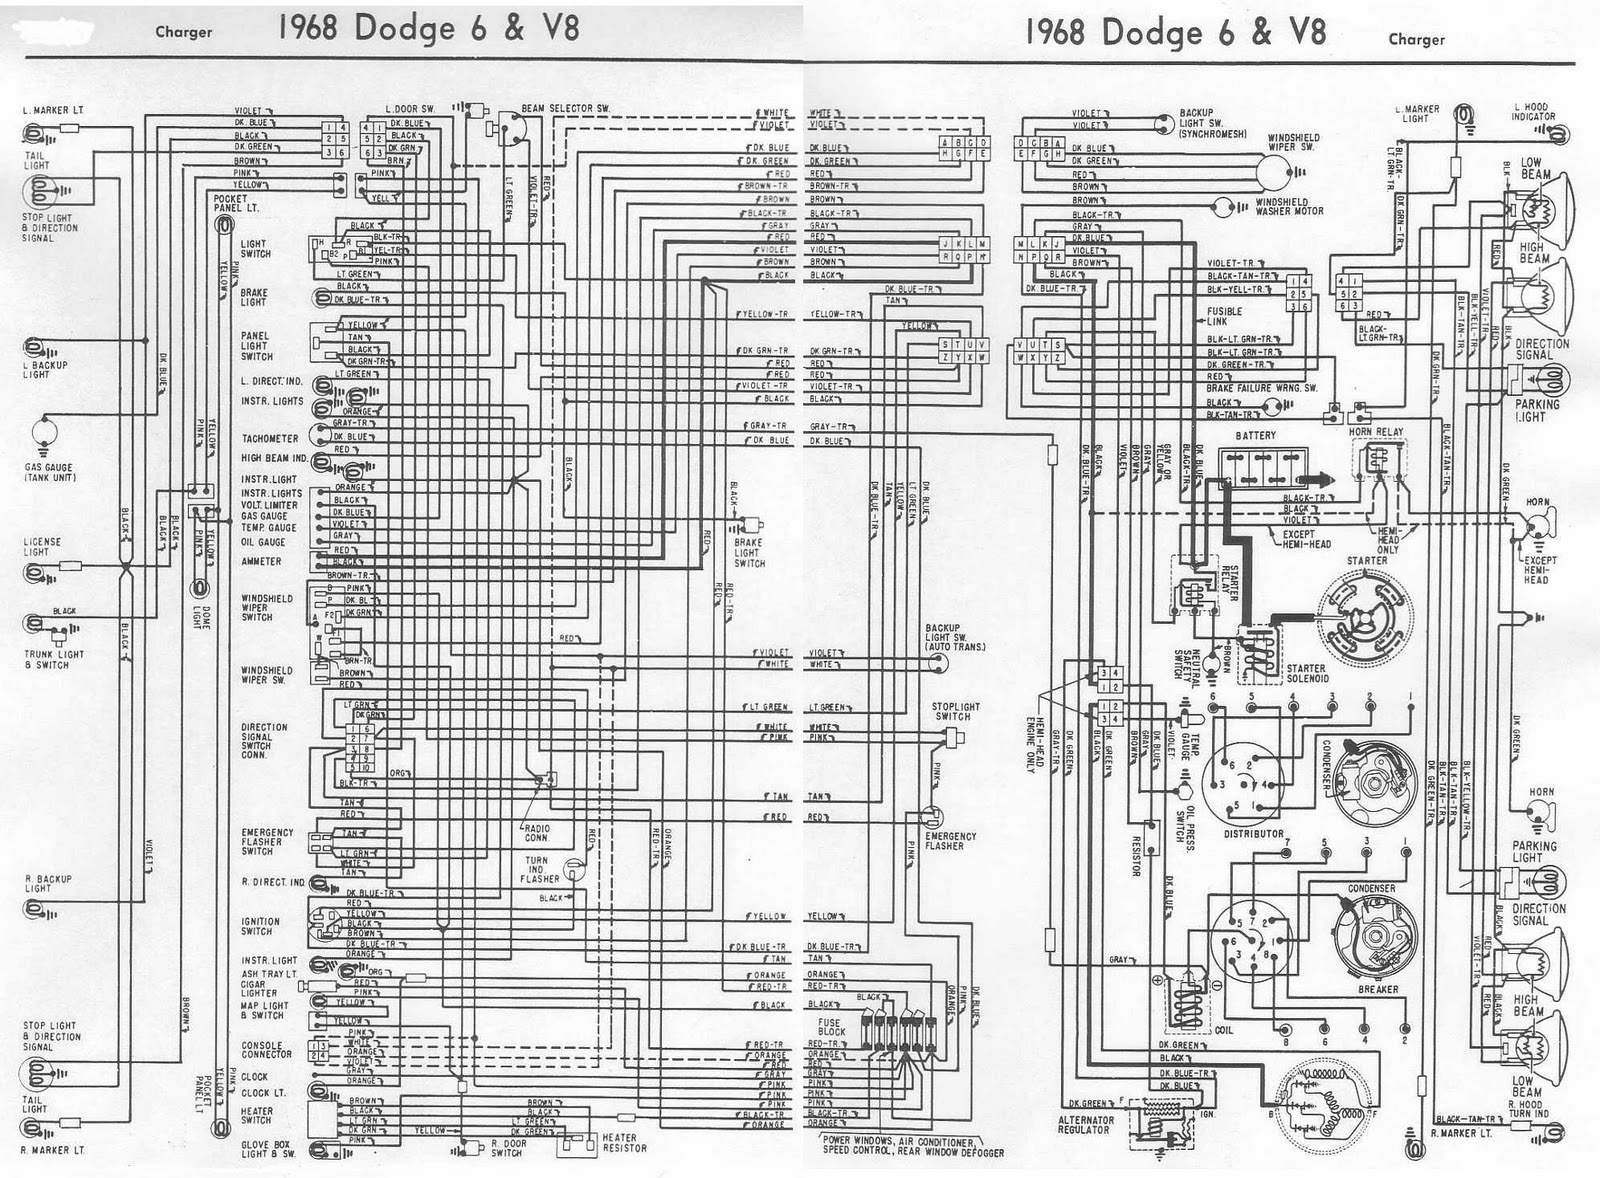 wiring diagram for 1968 dodge polara wiring wiring diagrams online dodge charger 1968 6 and v8 complete electrical wiring diagram